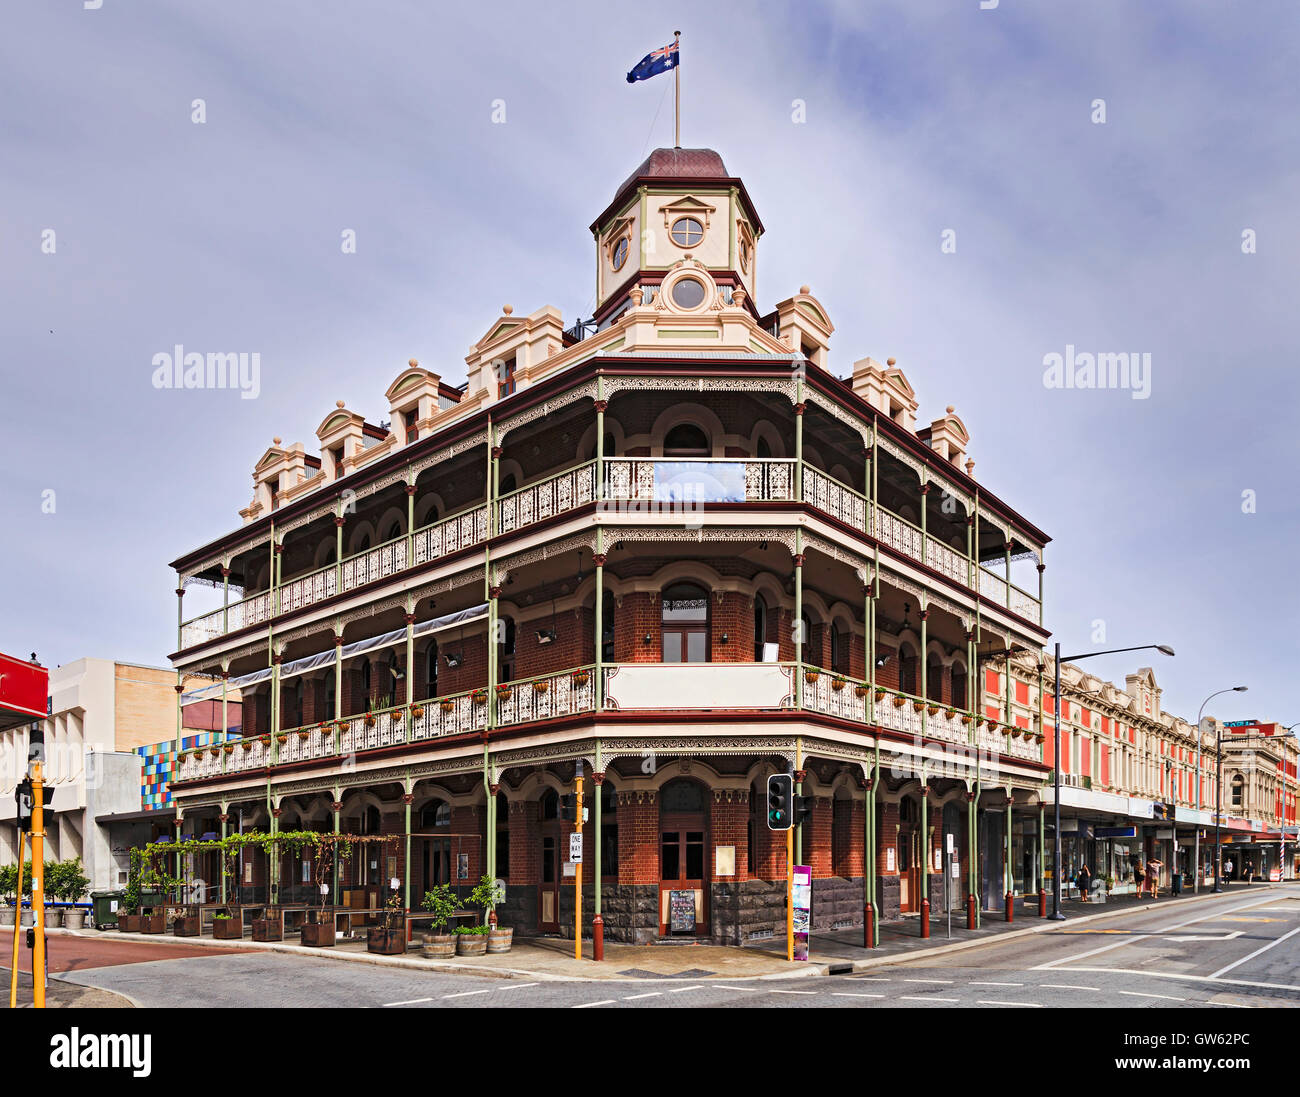 Historic buildings in the centre of Fremantle town near Perth of Western Australia. Corner of town streets with - Stock Image